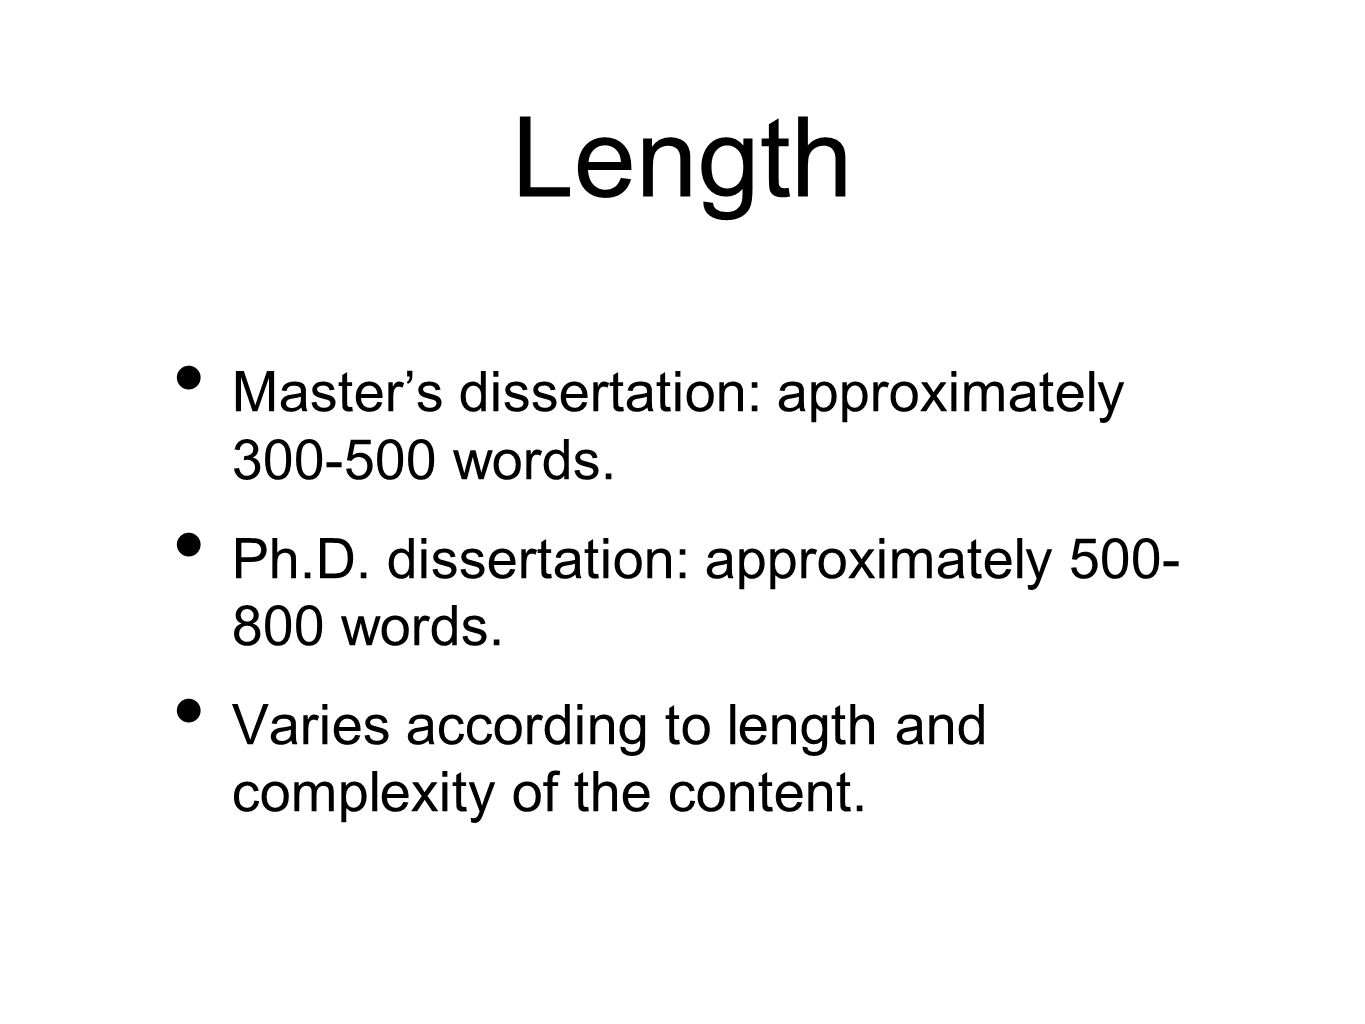 format for writing a masters thesis